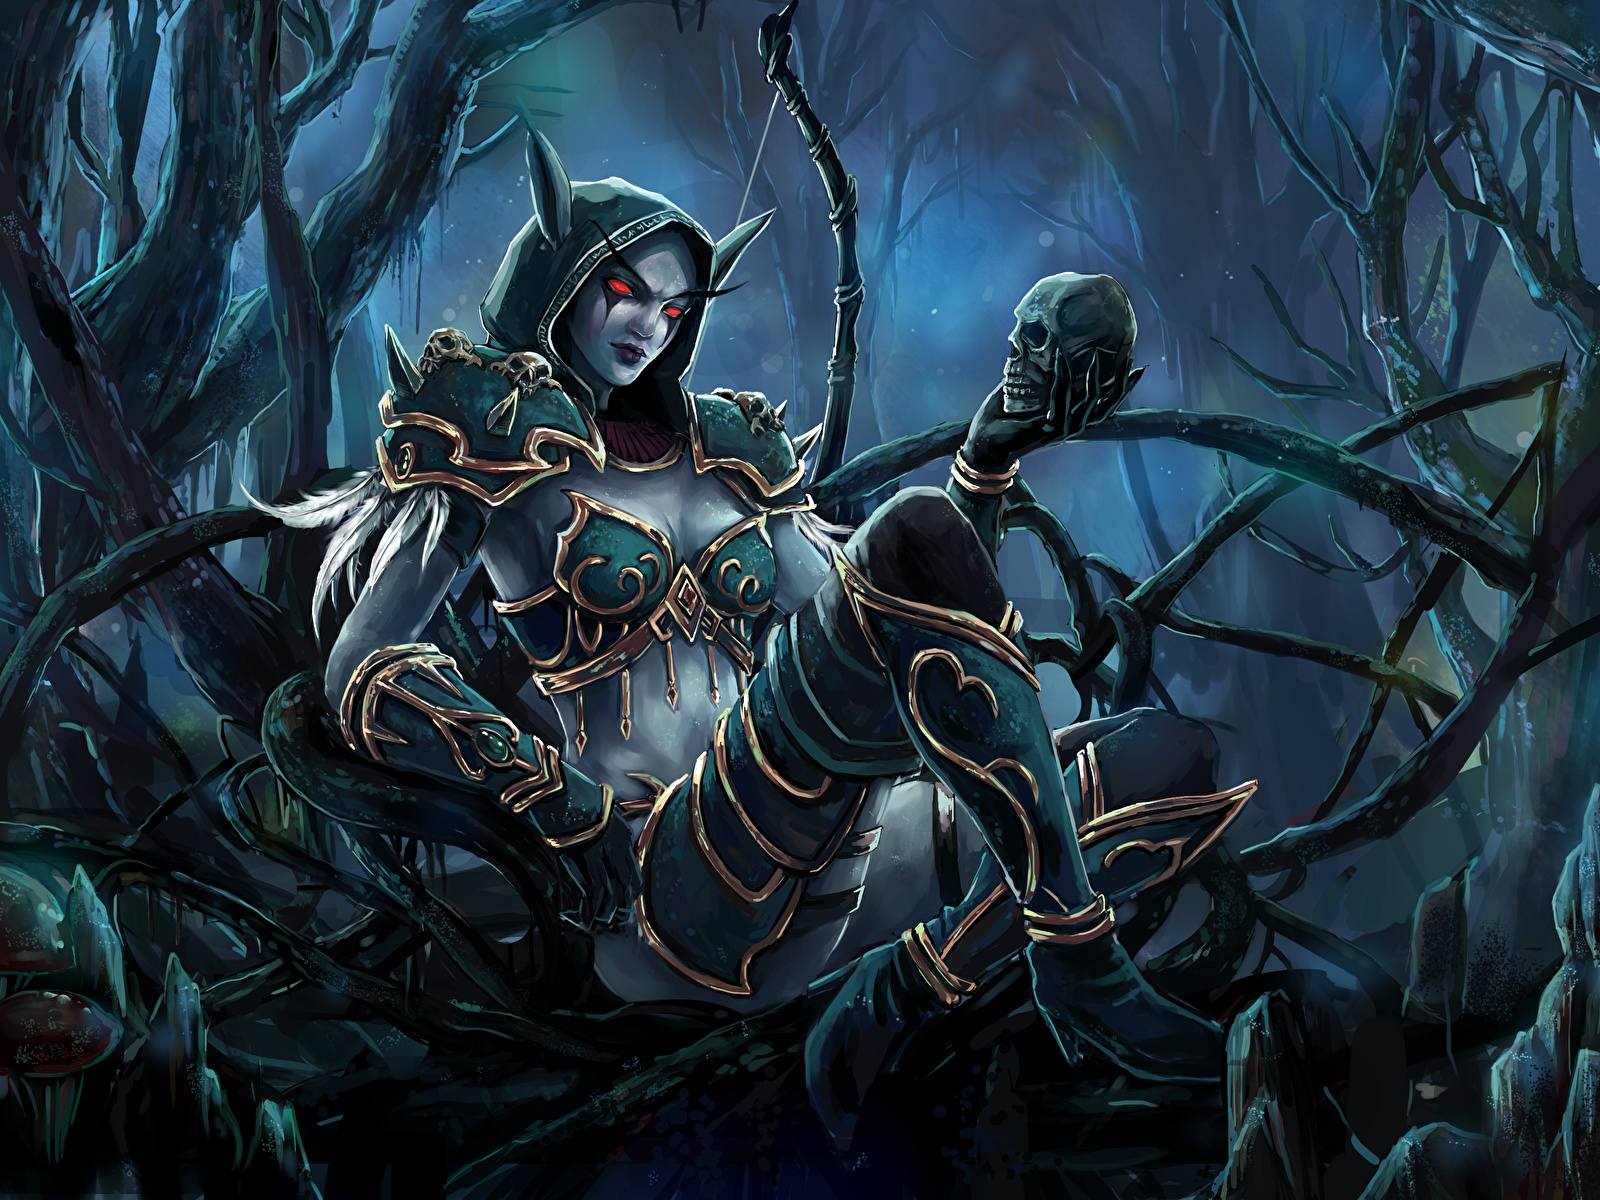 Whorecraft jaina and sylvanas erotic download